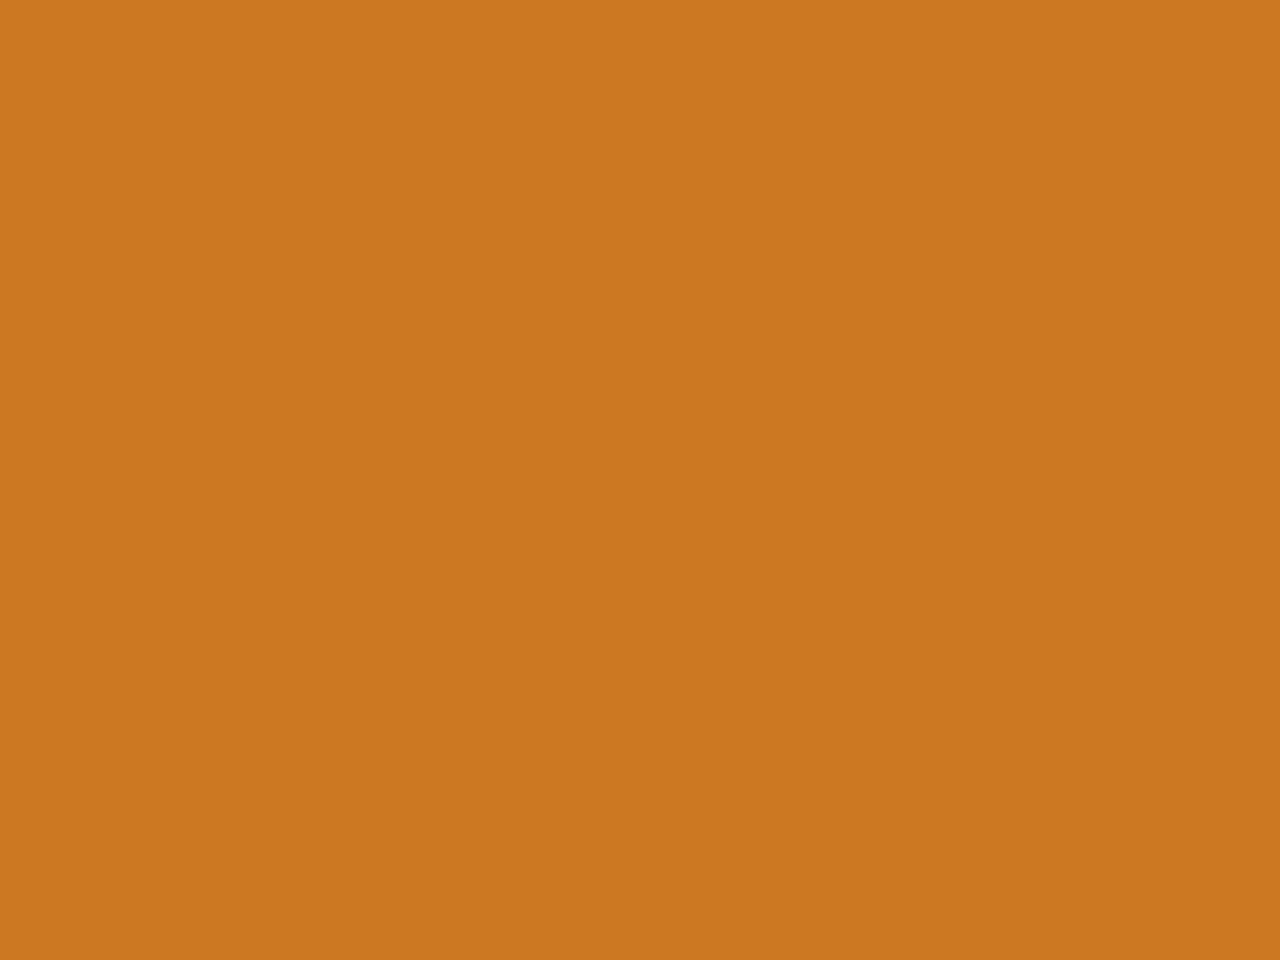 1280x960 Ochre Solid Color Background